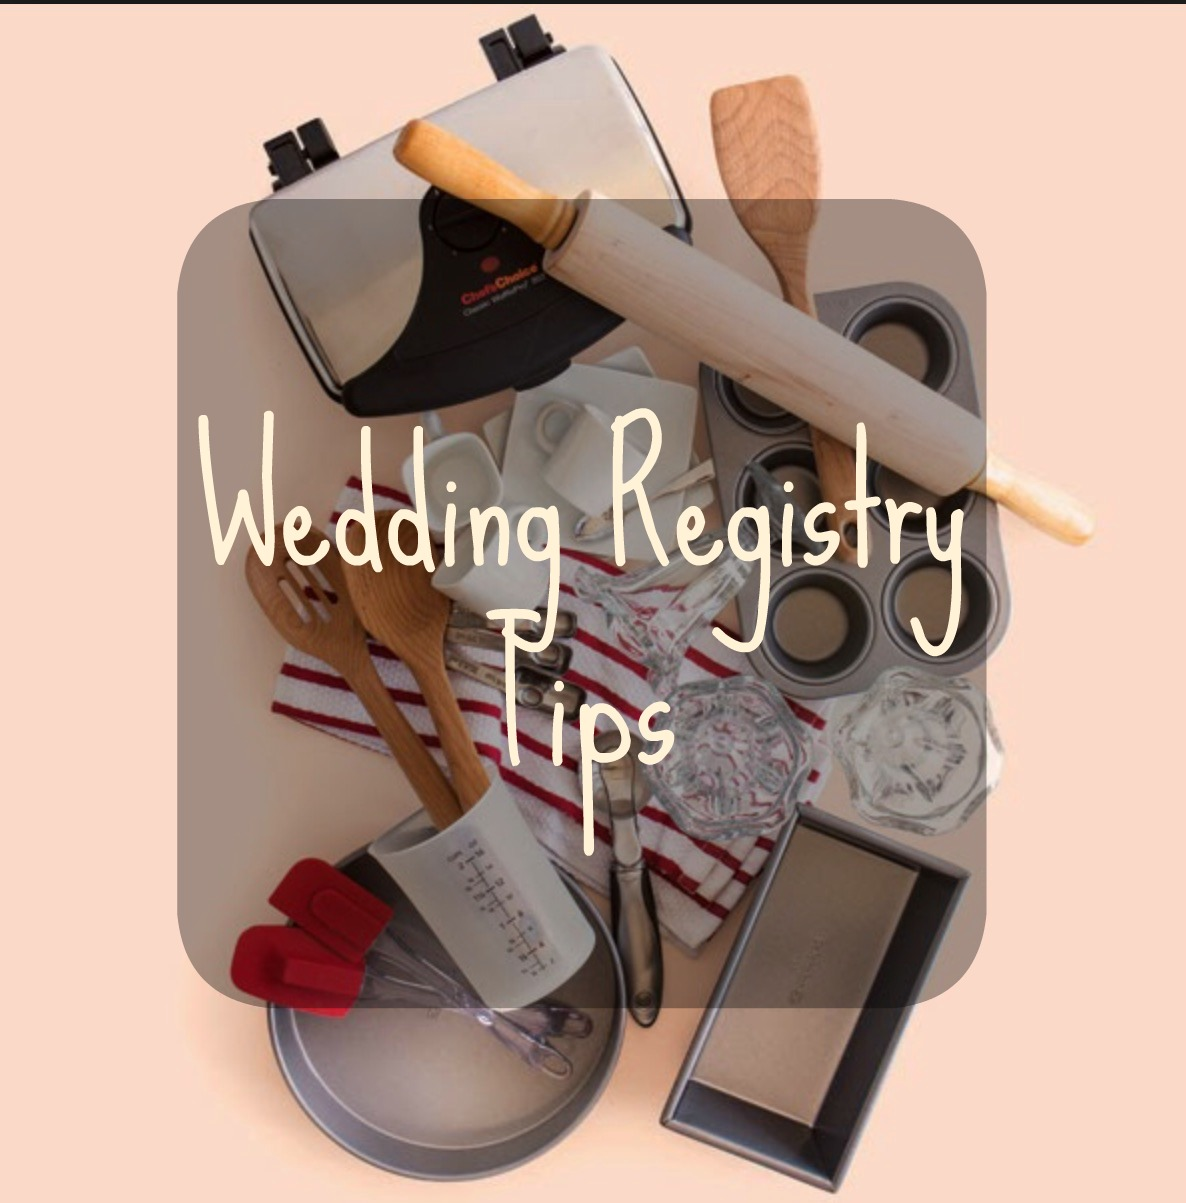 Wedding Registry List Ideas: Come Home For Comfort